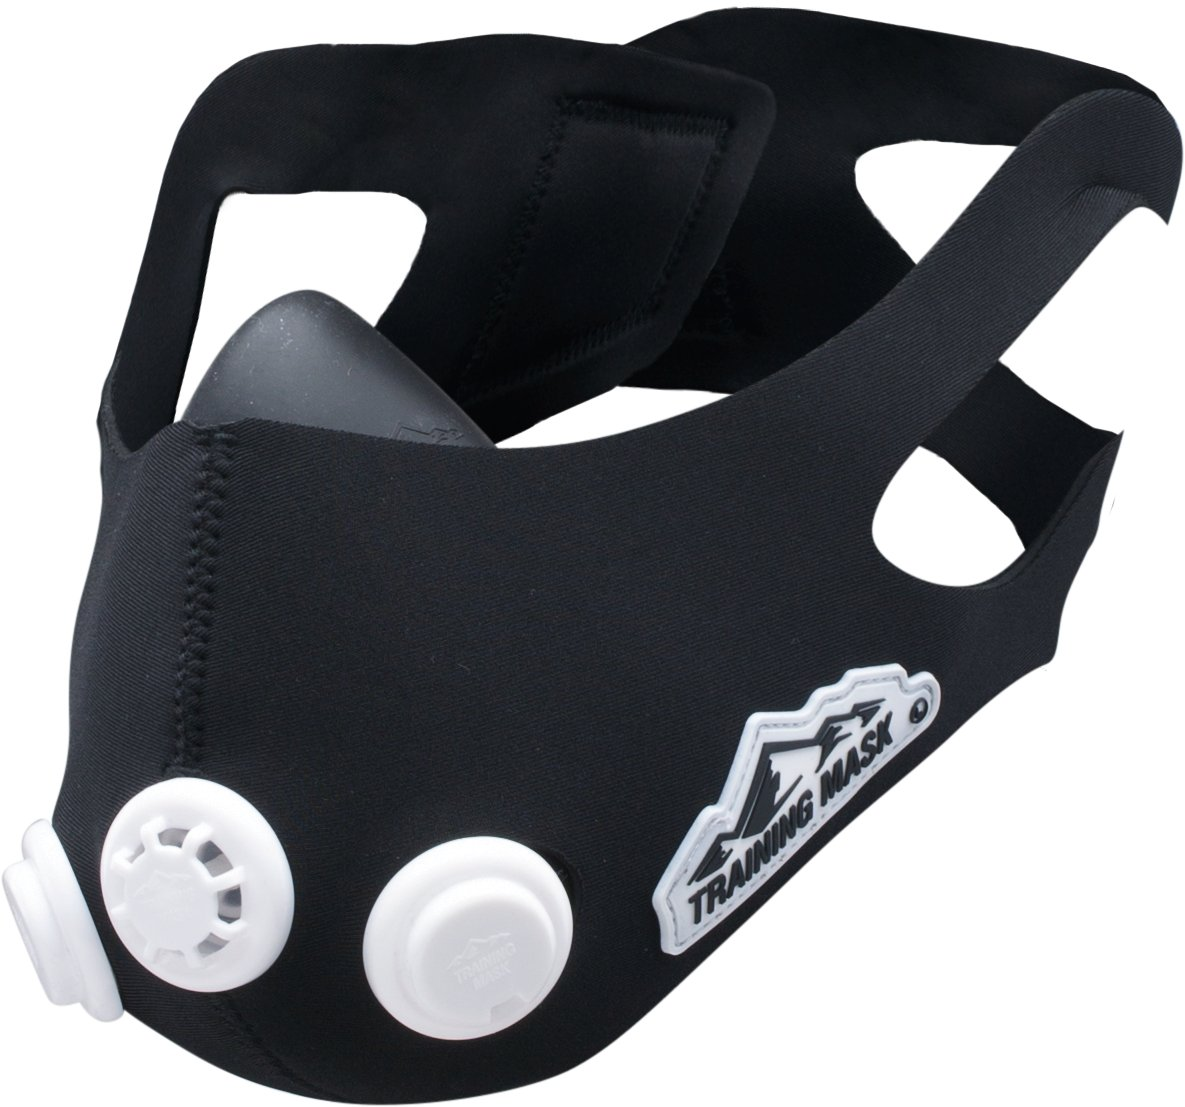 Training Mask 2.0, Black